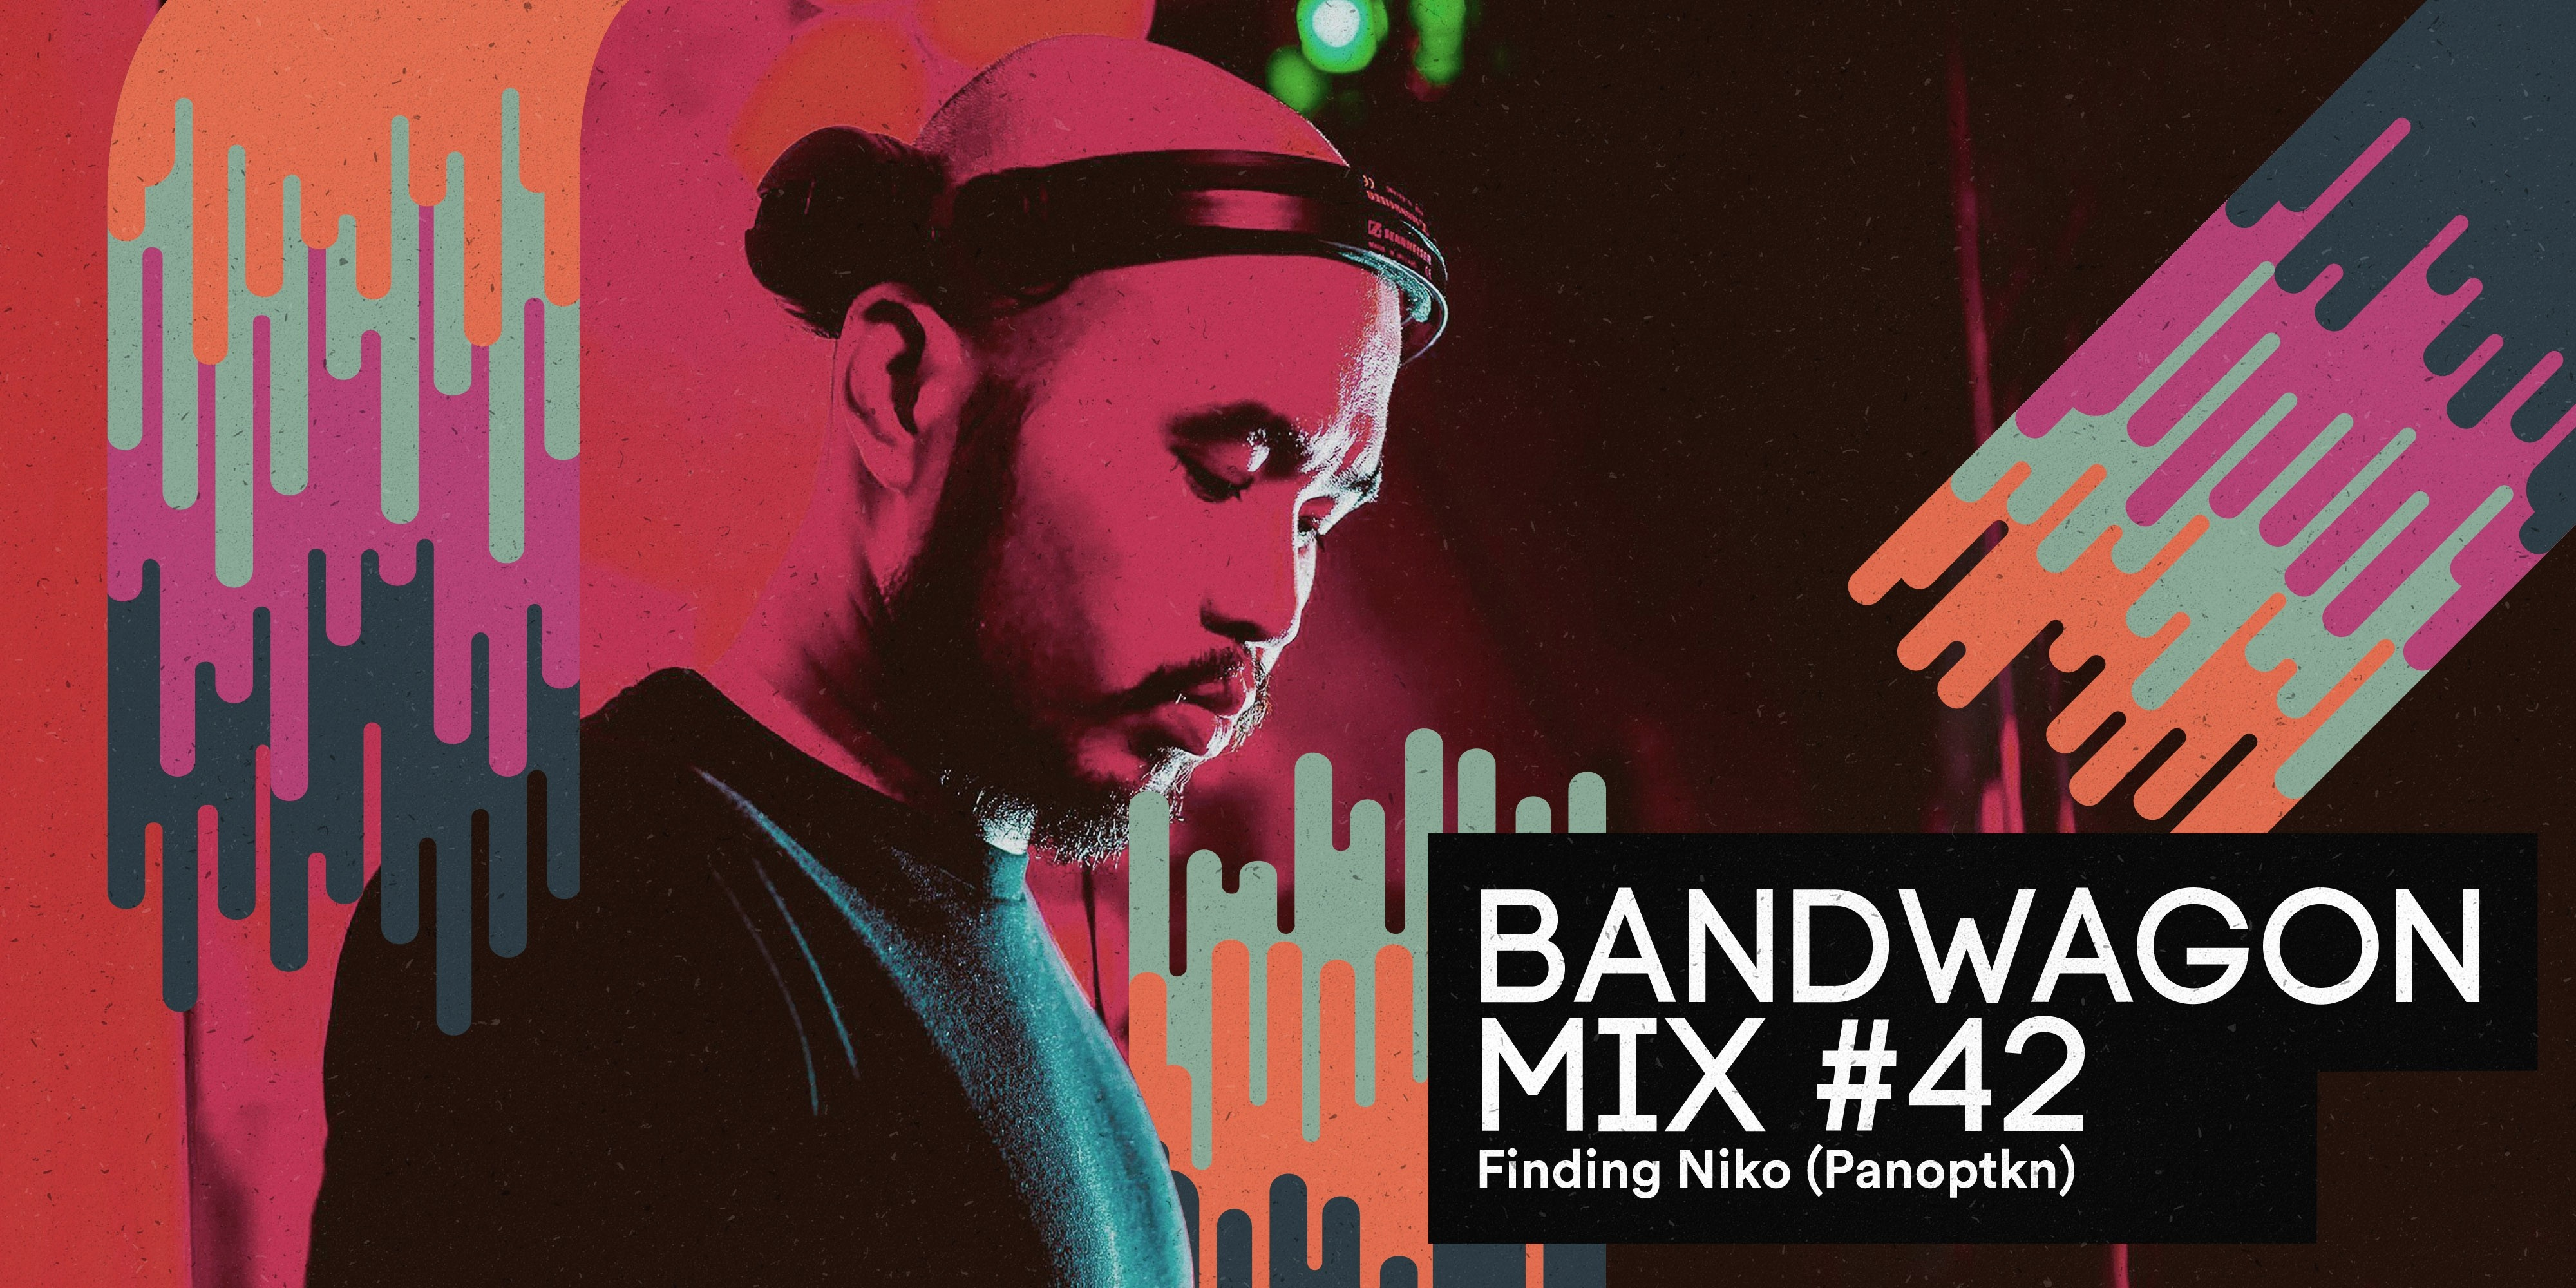 Bandwagon Mix #42: Finding Niko (Panoptkn)